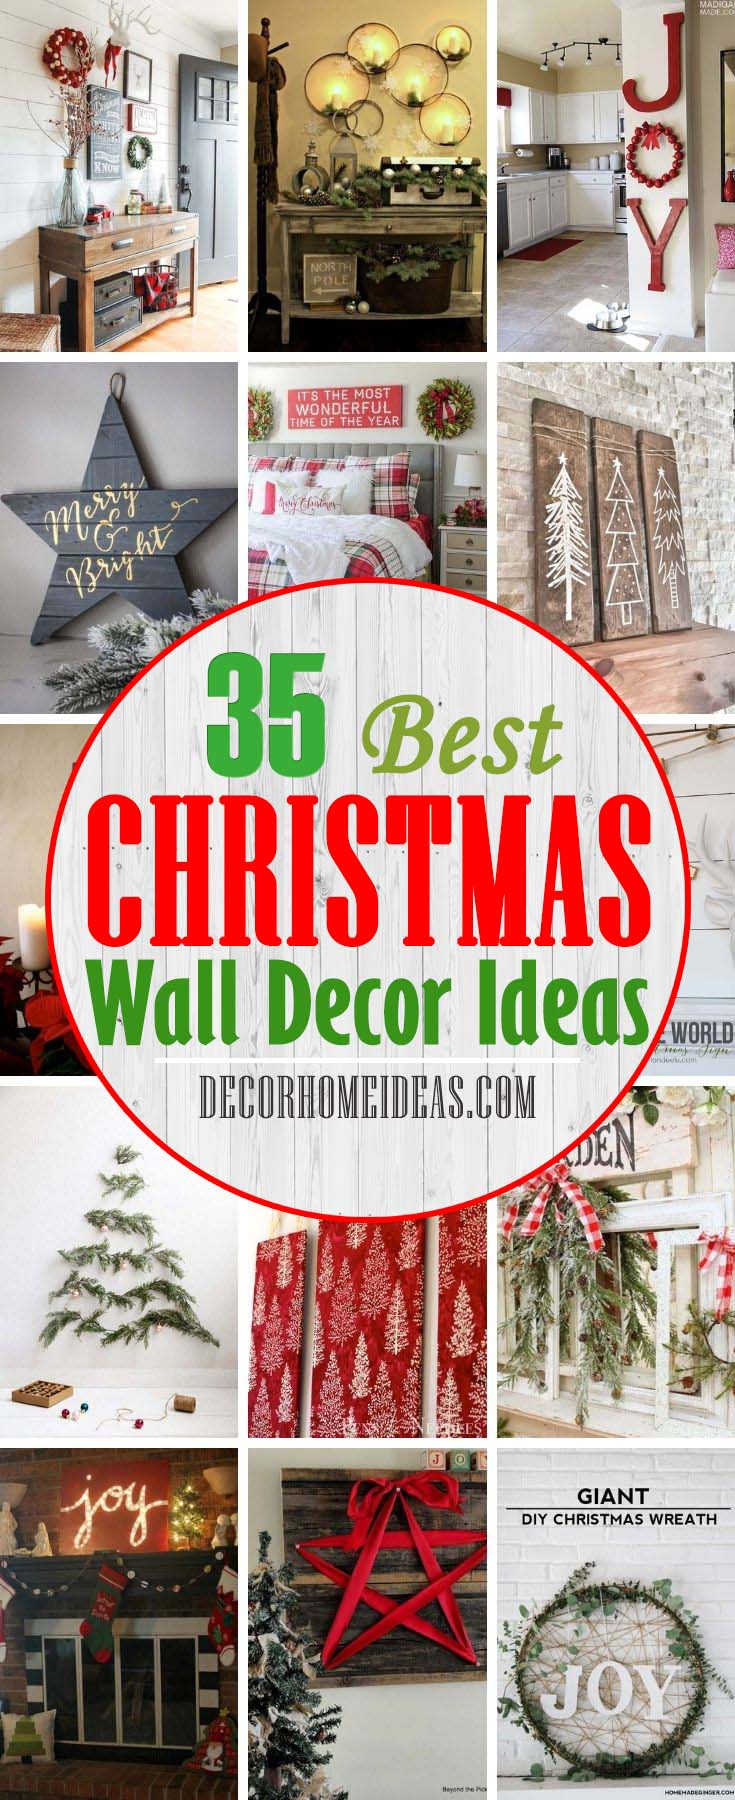 30 Diy Christmas Wall Decor Ideas To Fill Your Home With Holiday Cheer Decor Home Ideas